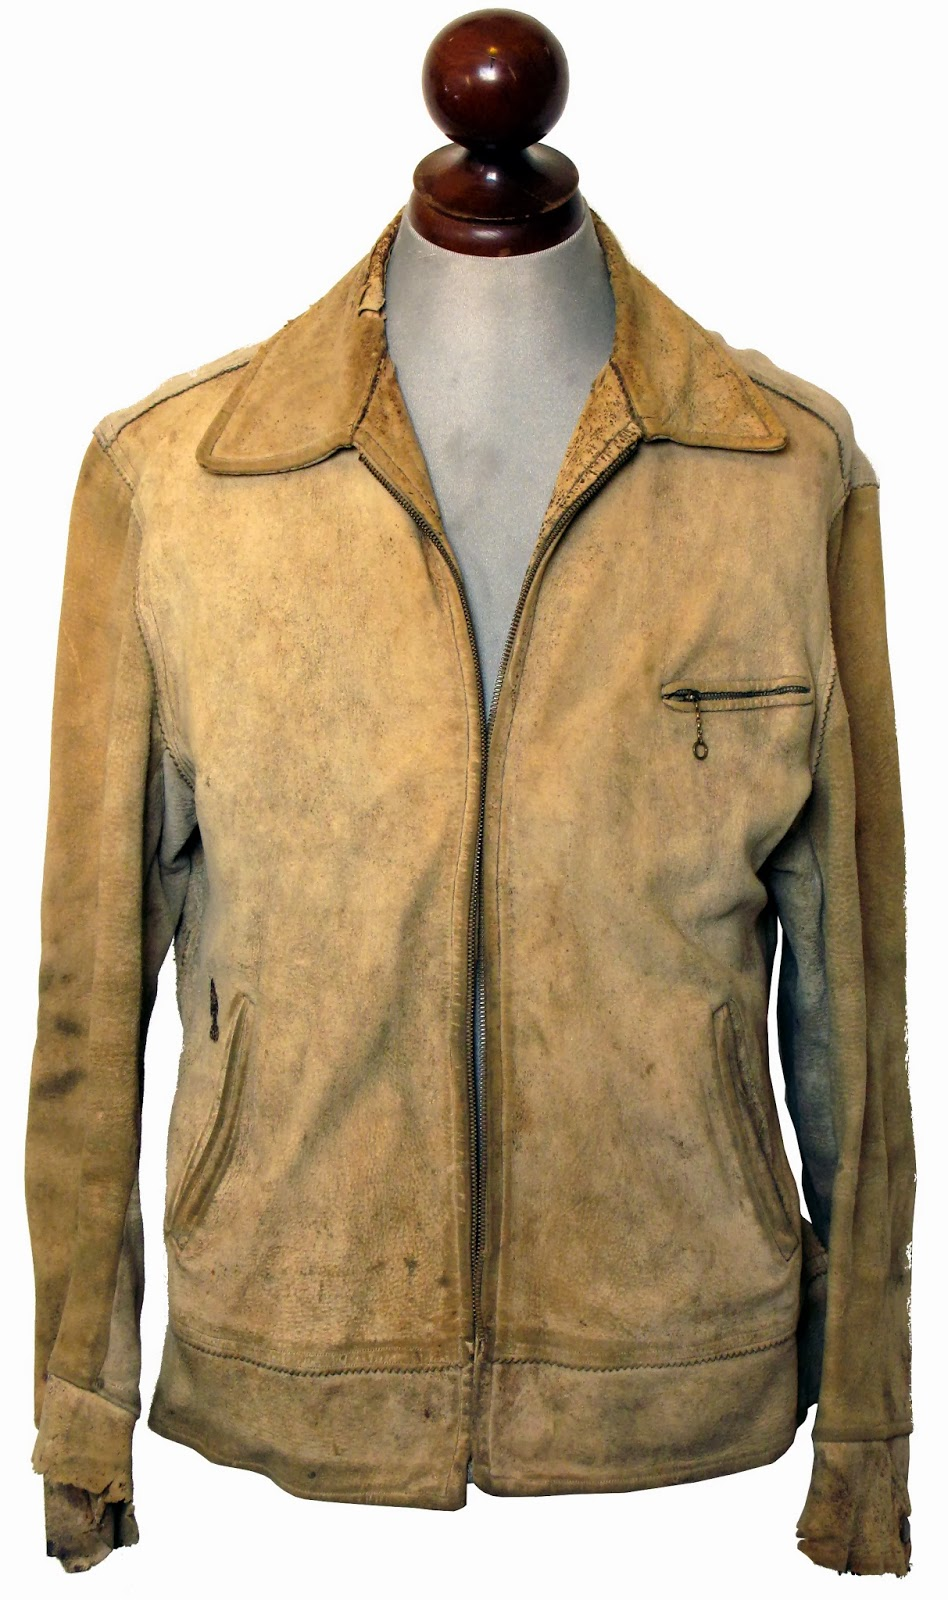 Vintage leather jackets org